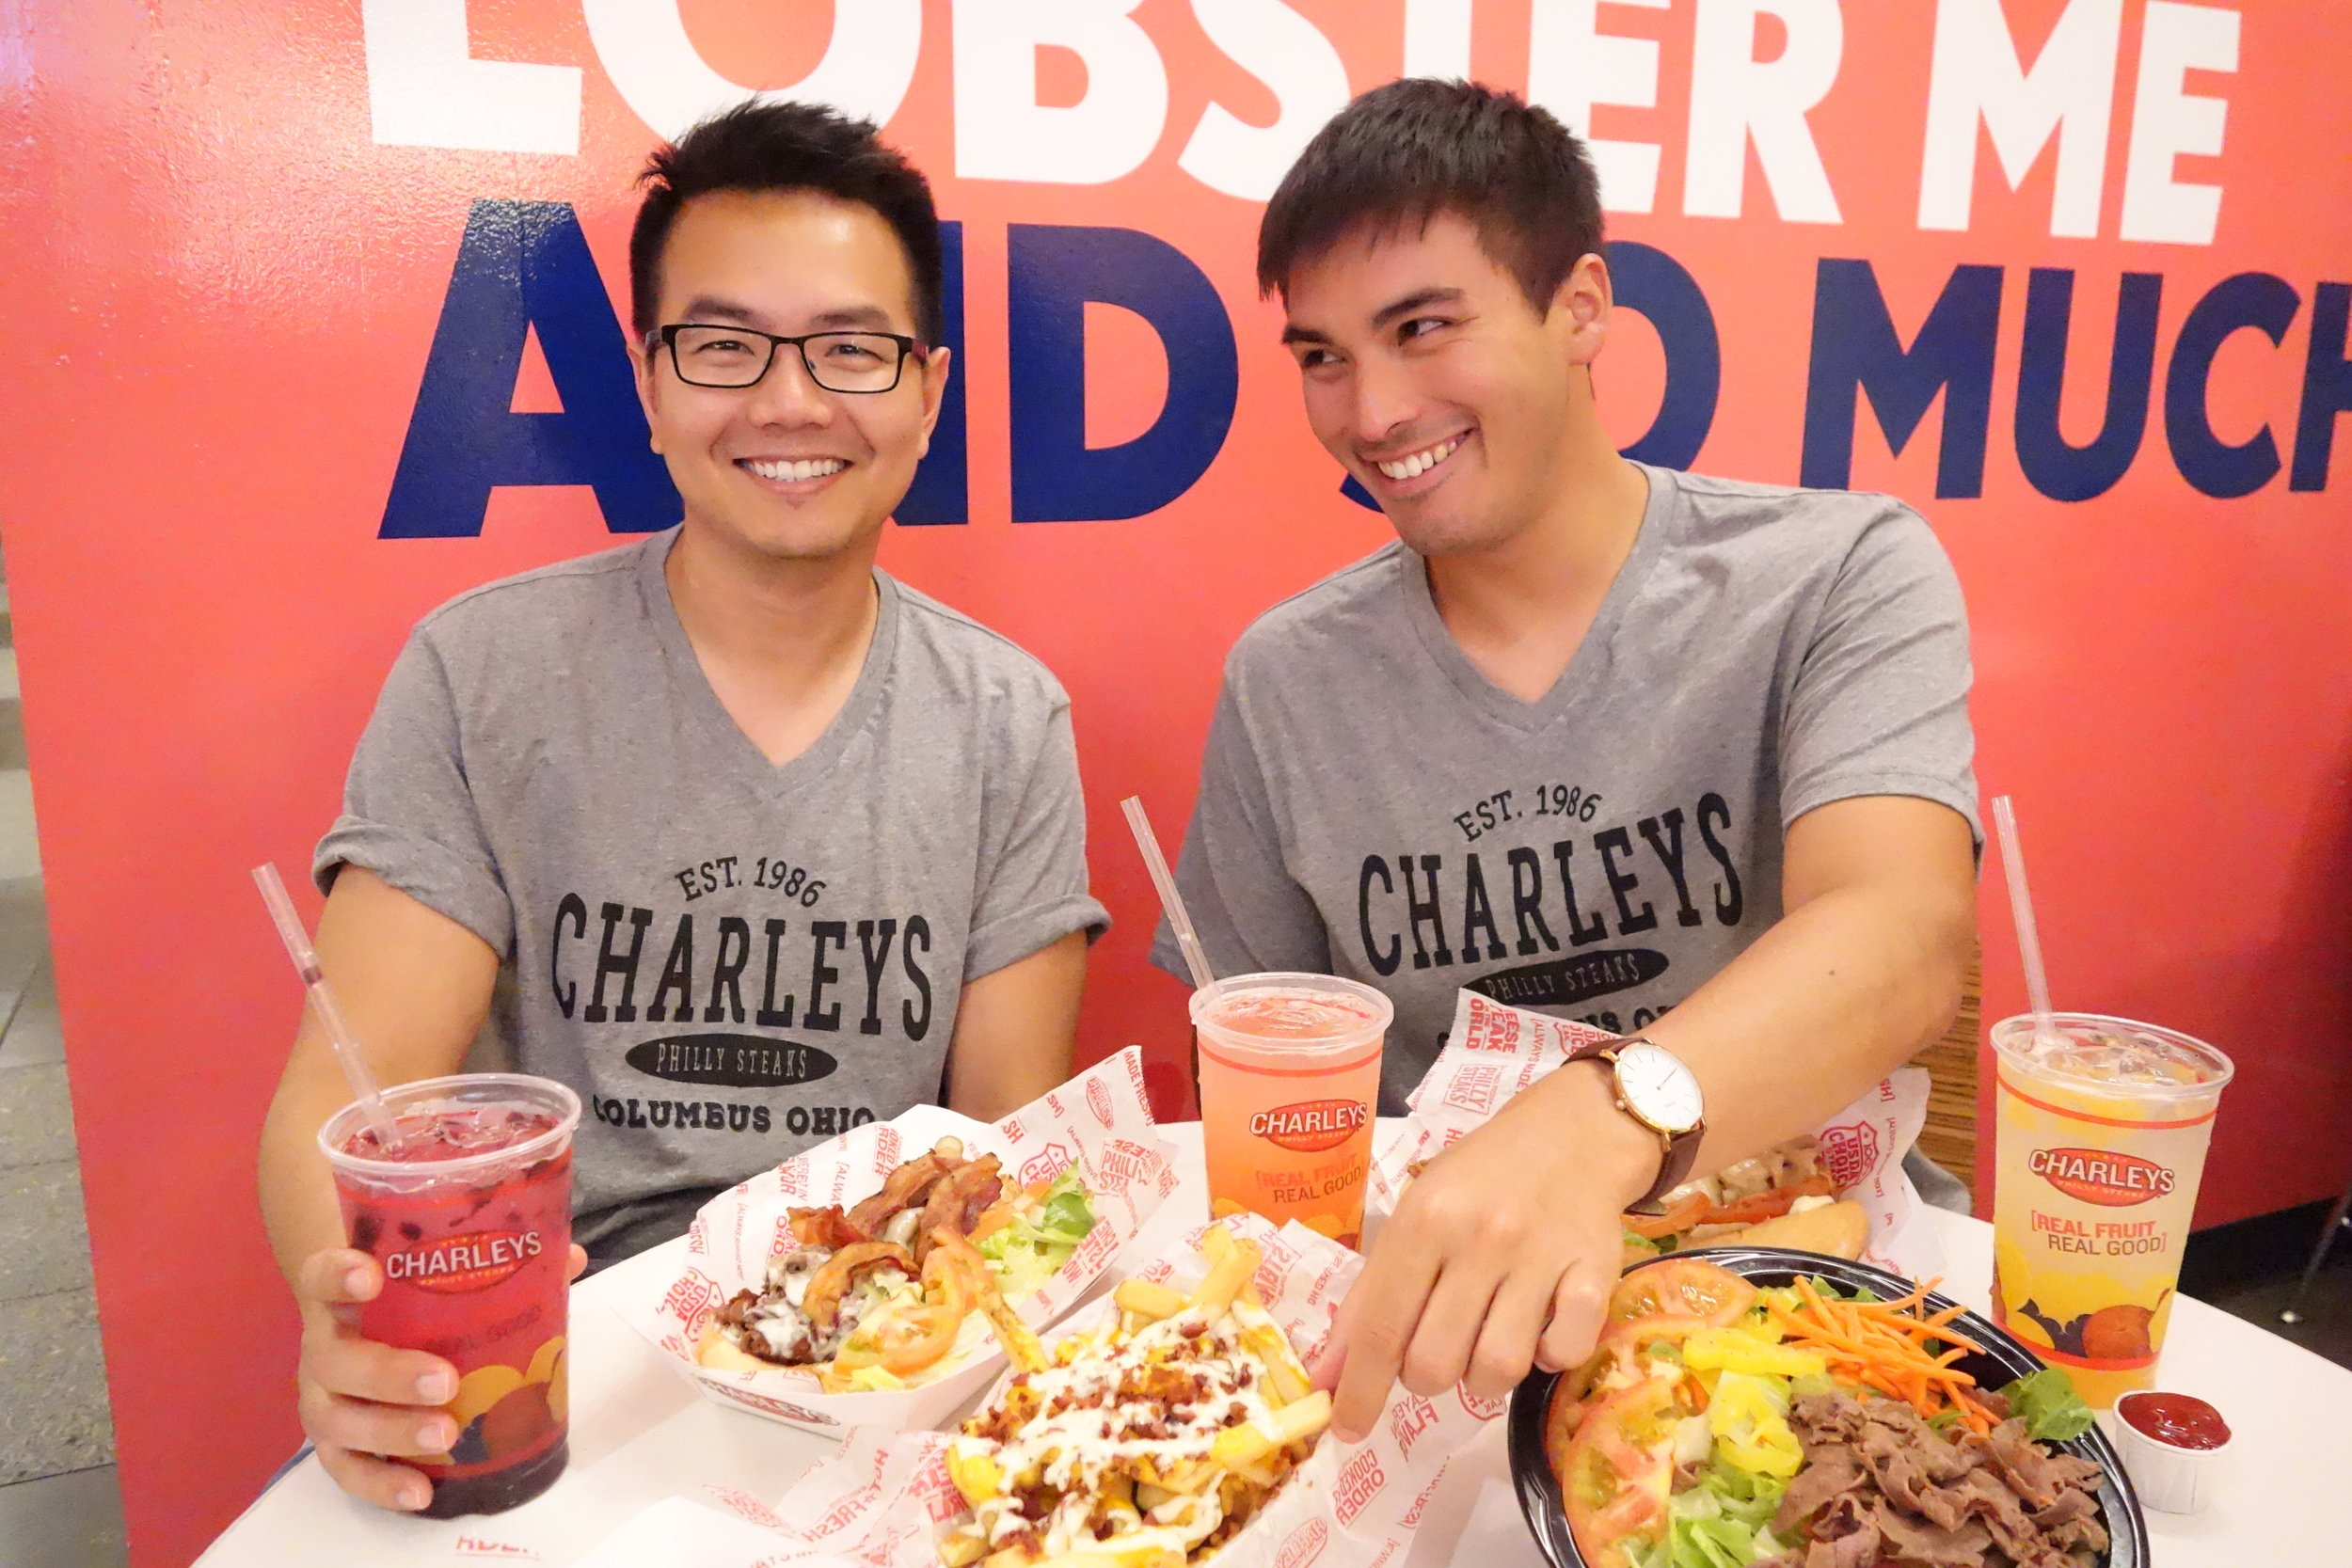 charleys-philly-steaks-sf-sffoodphotography-sandy-by-the-bay-sandybythebay-sf-westfield-san-francisco-centre-sfeats